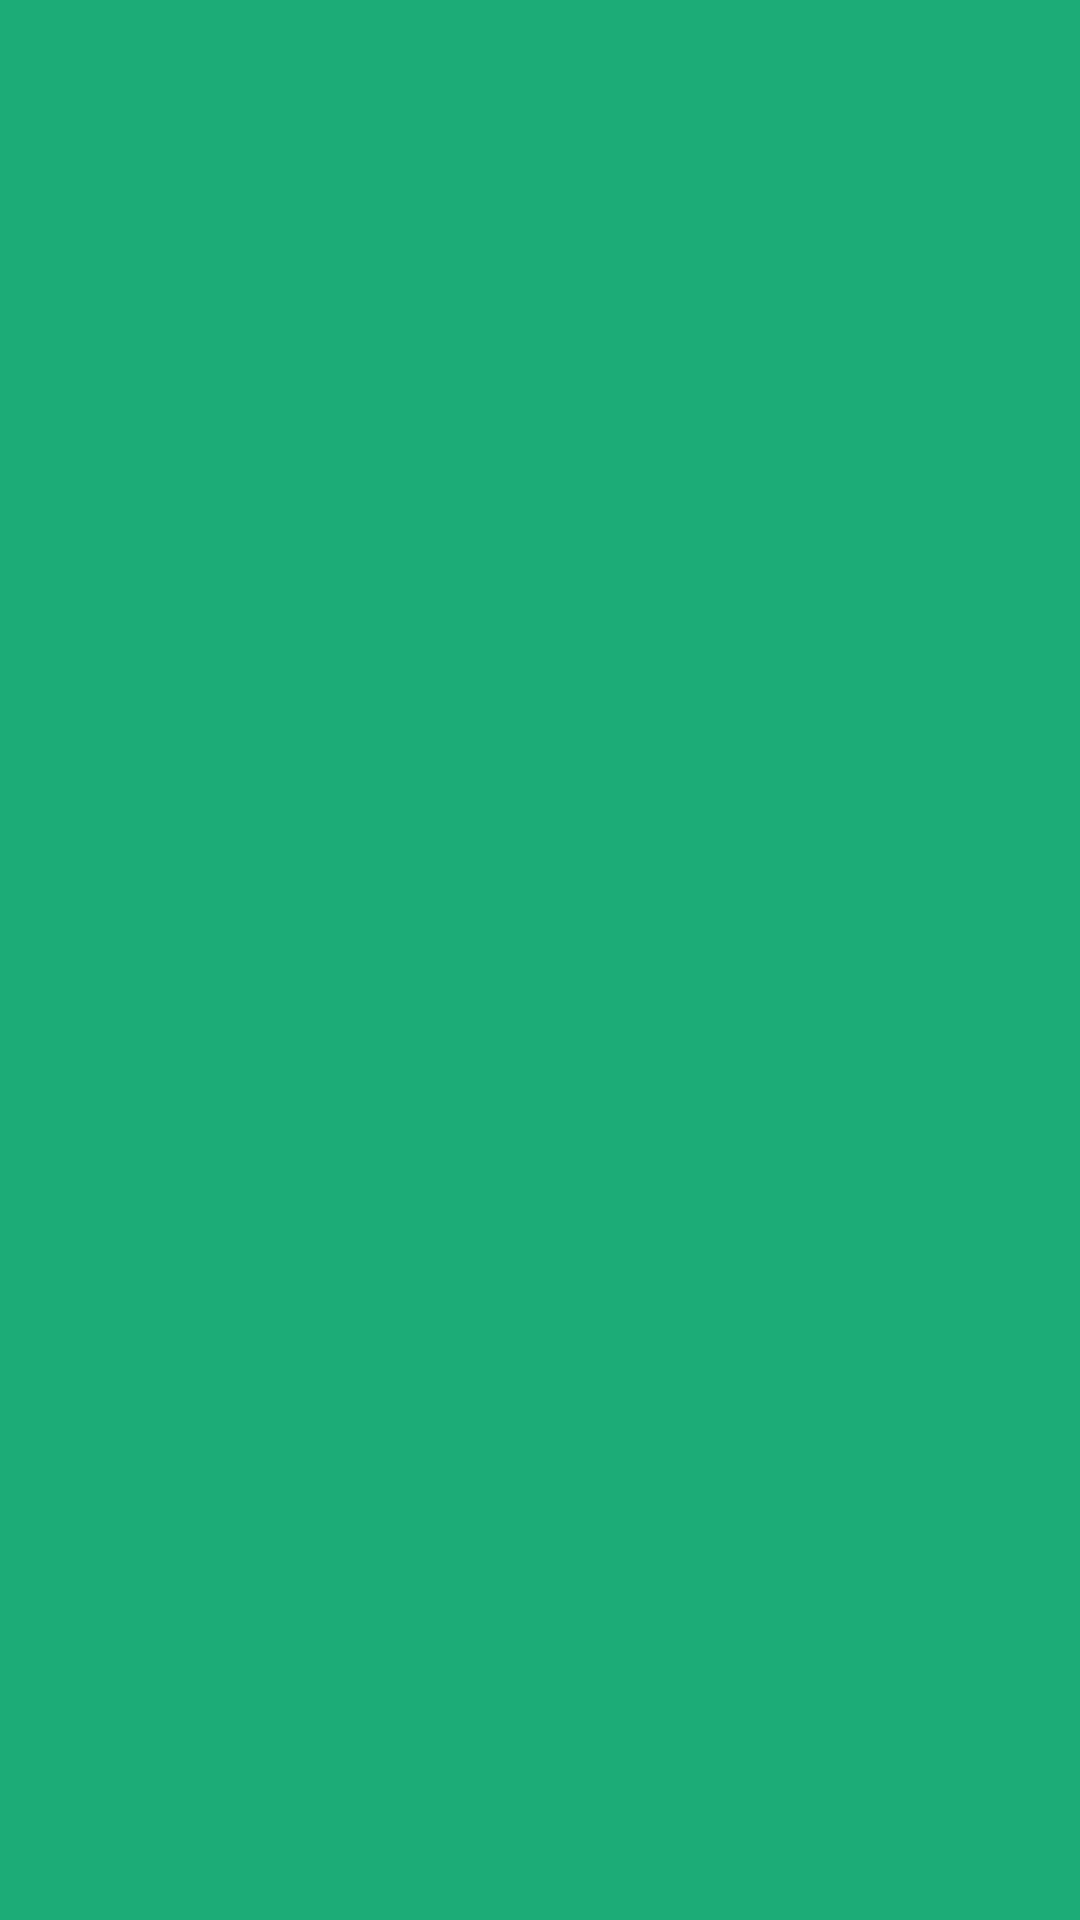 1080x1920 Green Crayola Solid Color Background